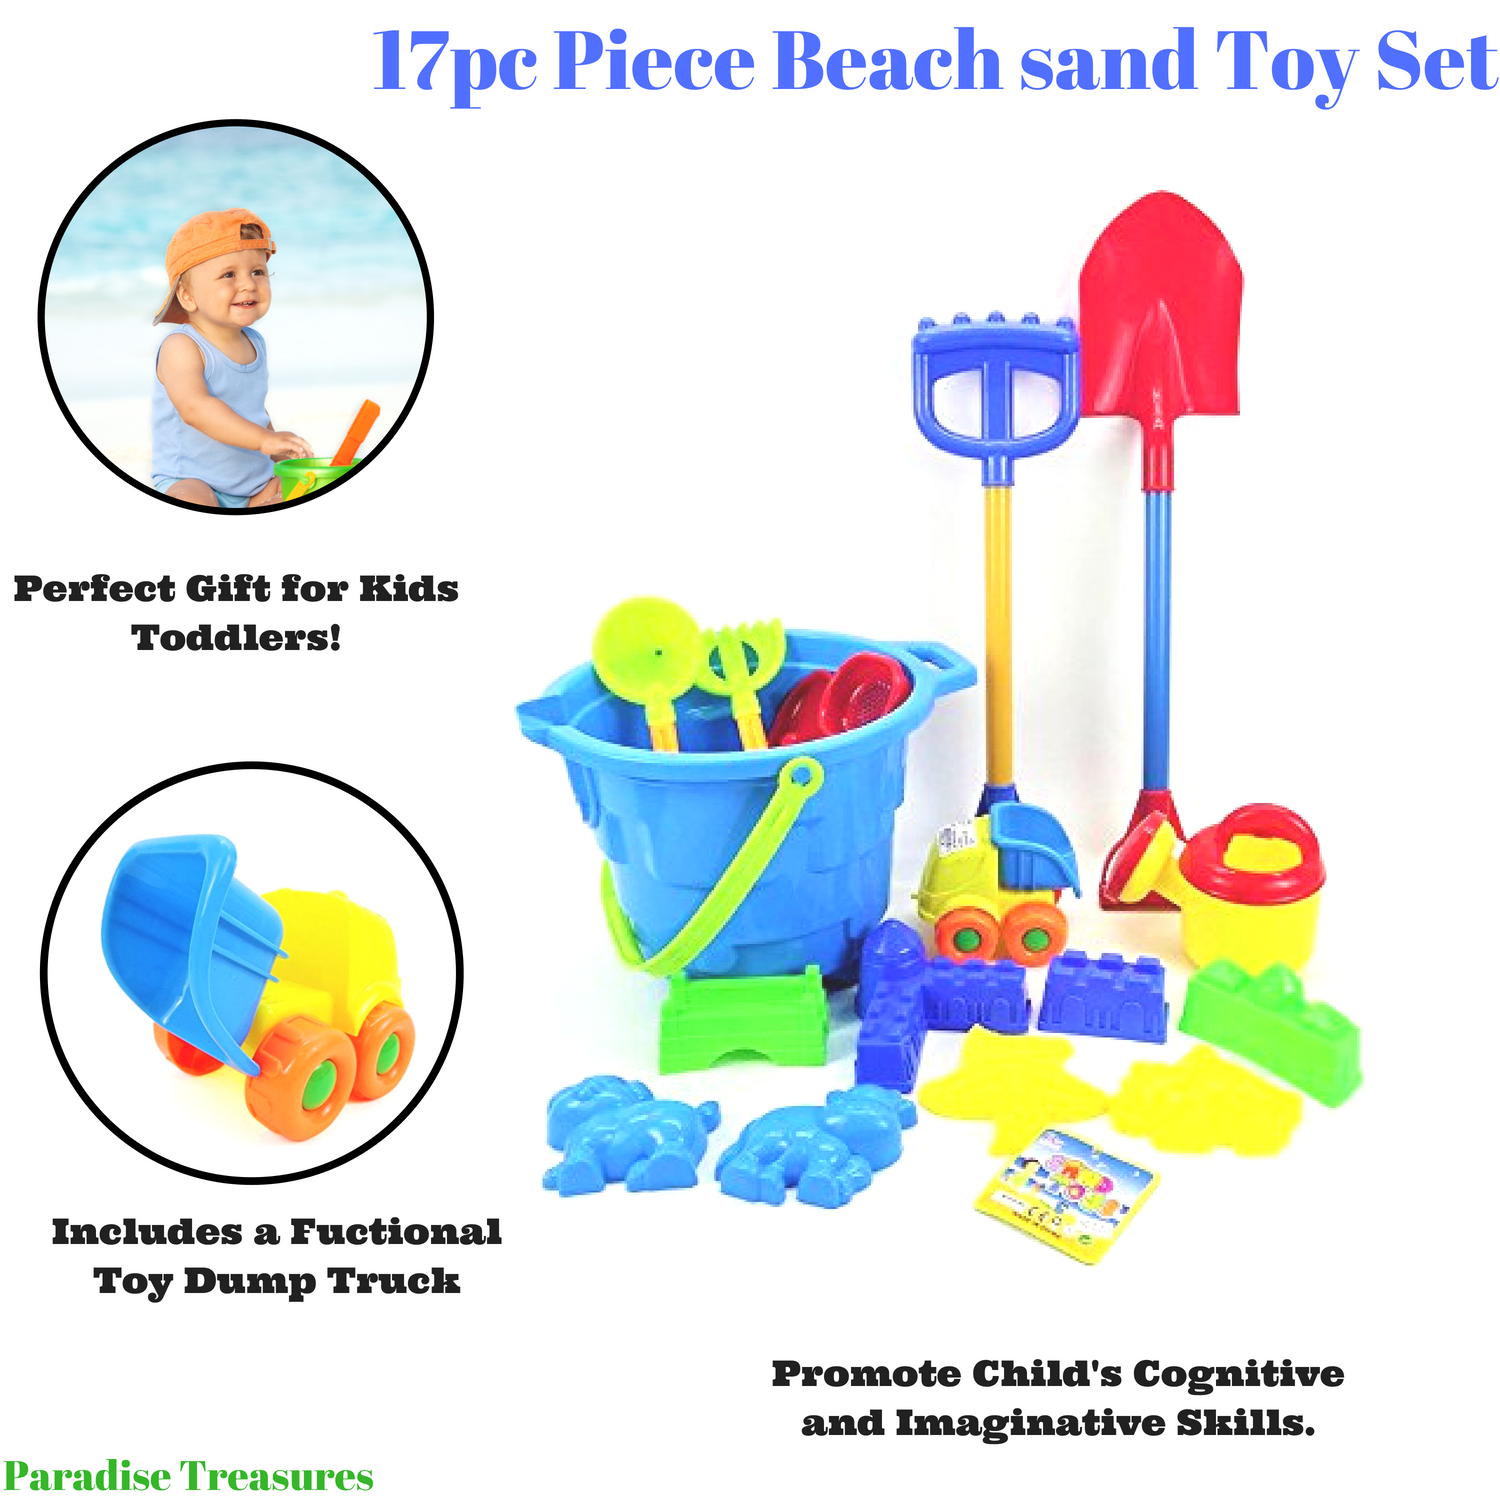 Click here to buy 17pc Piece Beach sand Toy Set,Toy Dump Truck, Bucket, Shovels, Rakes, Sand Wheel, Watering Can, Molds by Paradise Treasures.